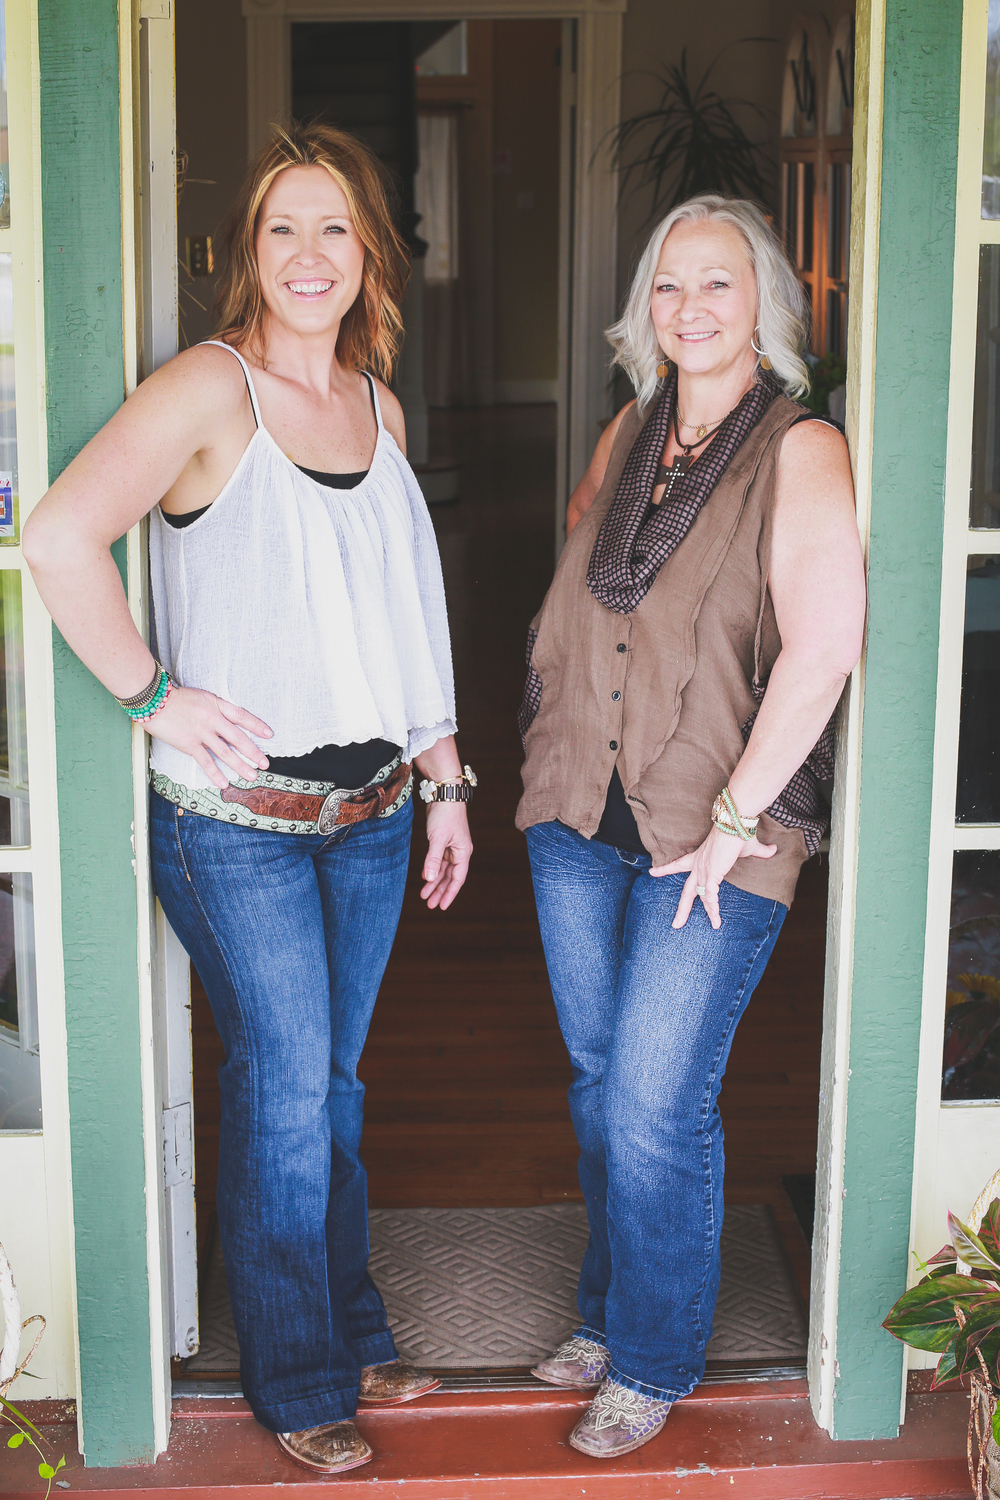 Owners Julie Wilson-MIller and Heather Hull